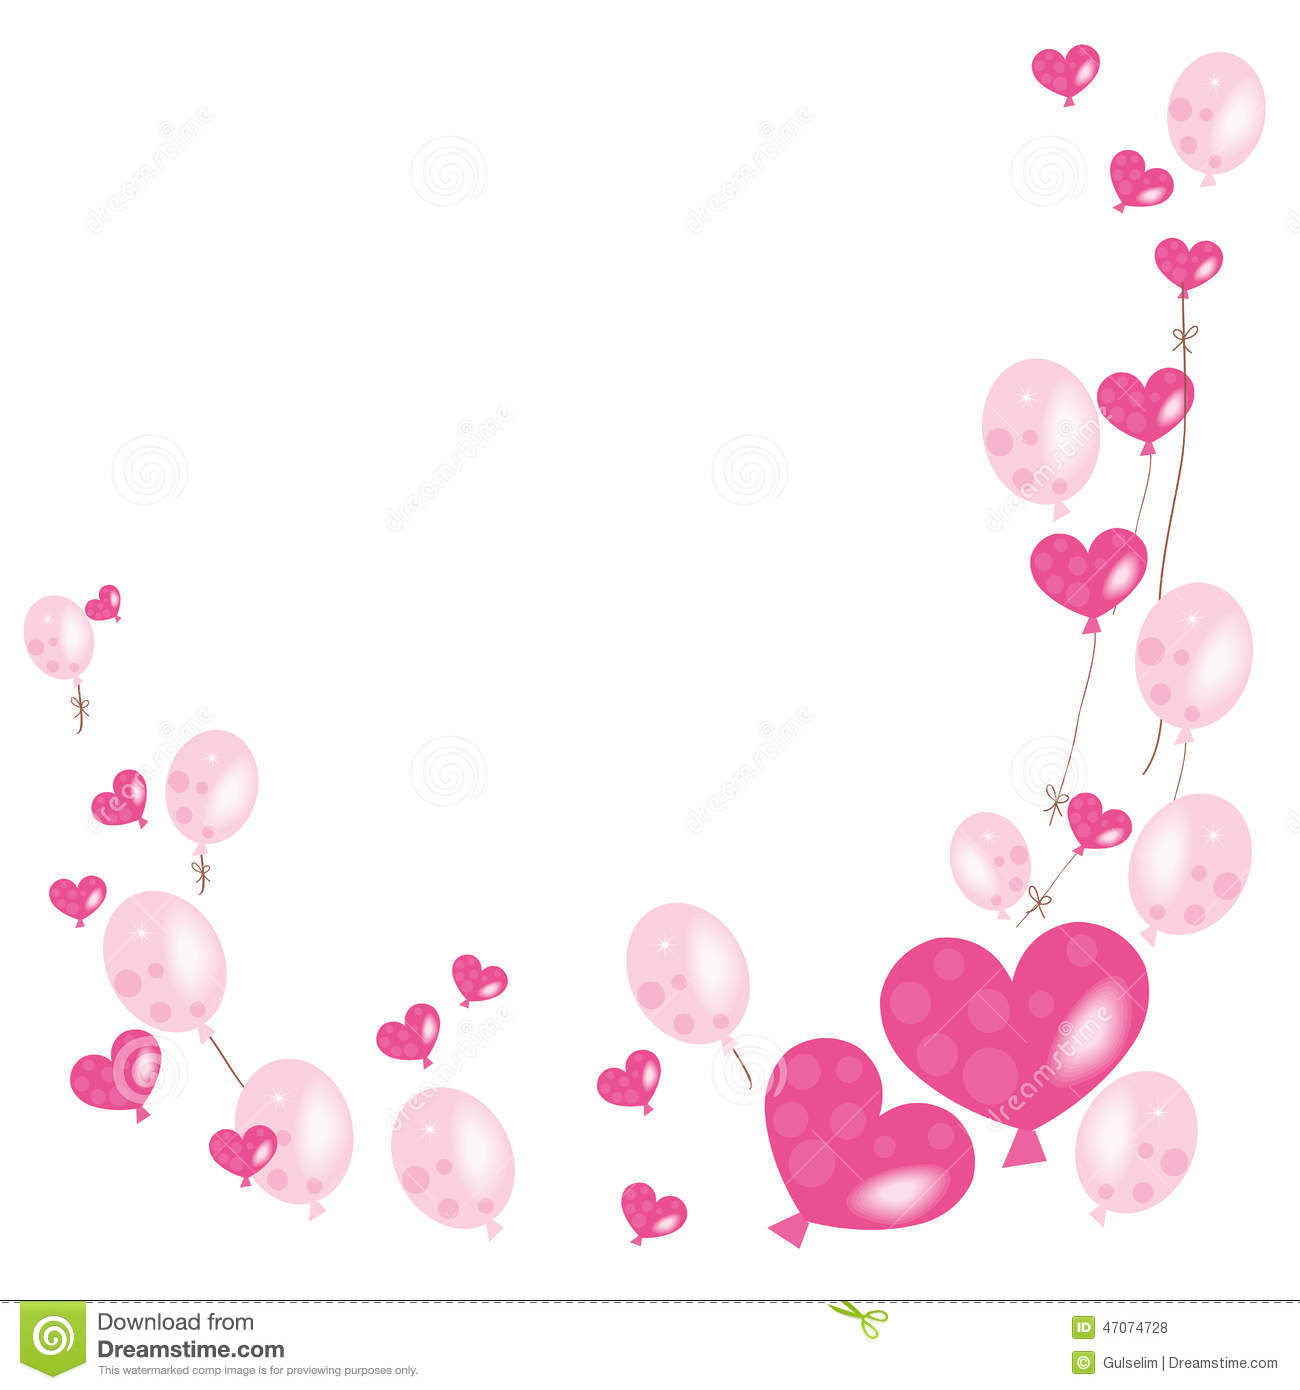 Hearts And Pink Balloons Vector Background